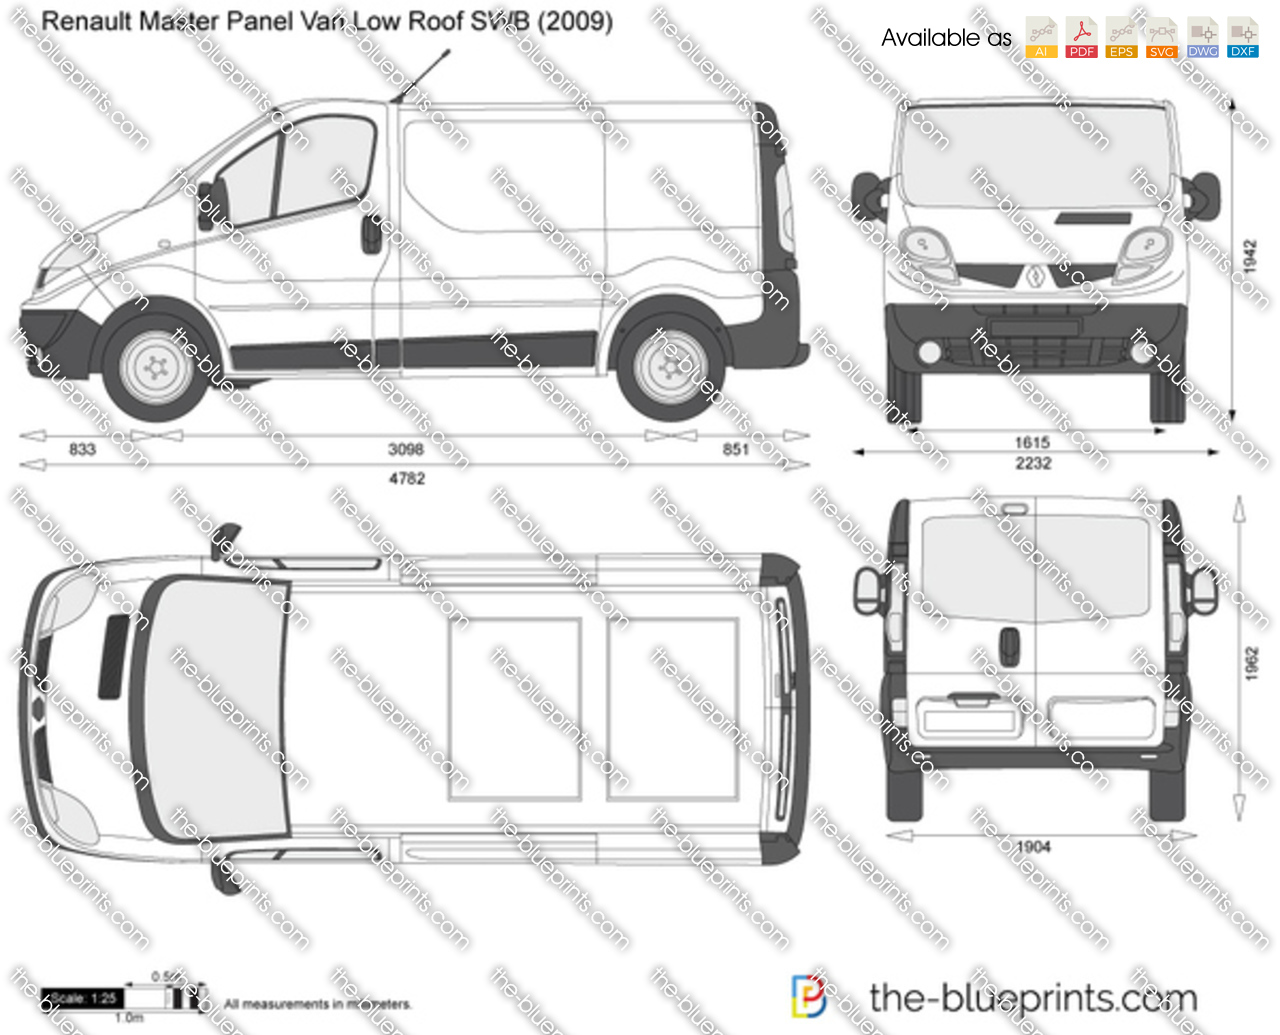 The Blueprints Com Vector Drawing Renault Trafic Panel